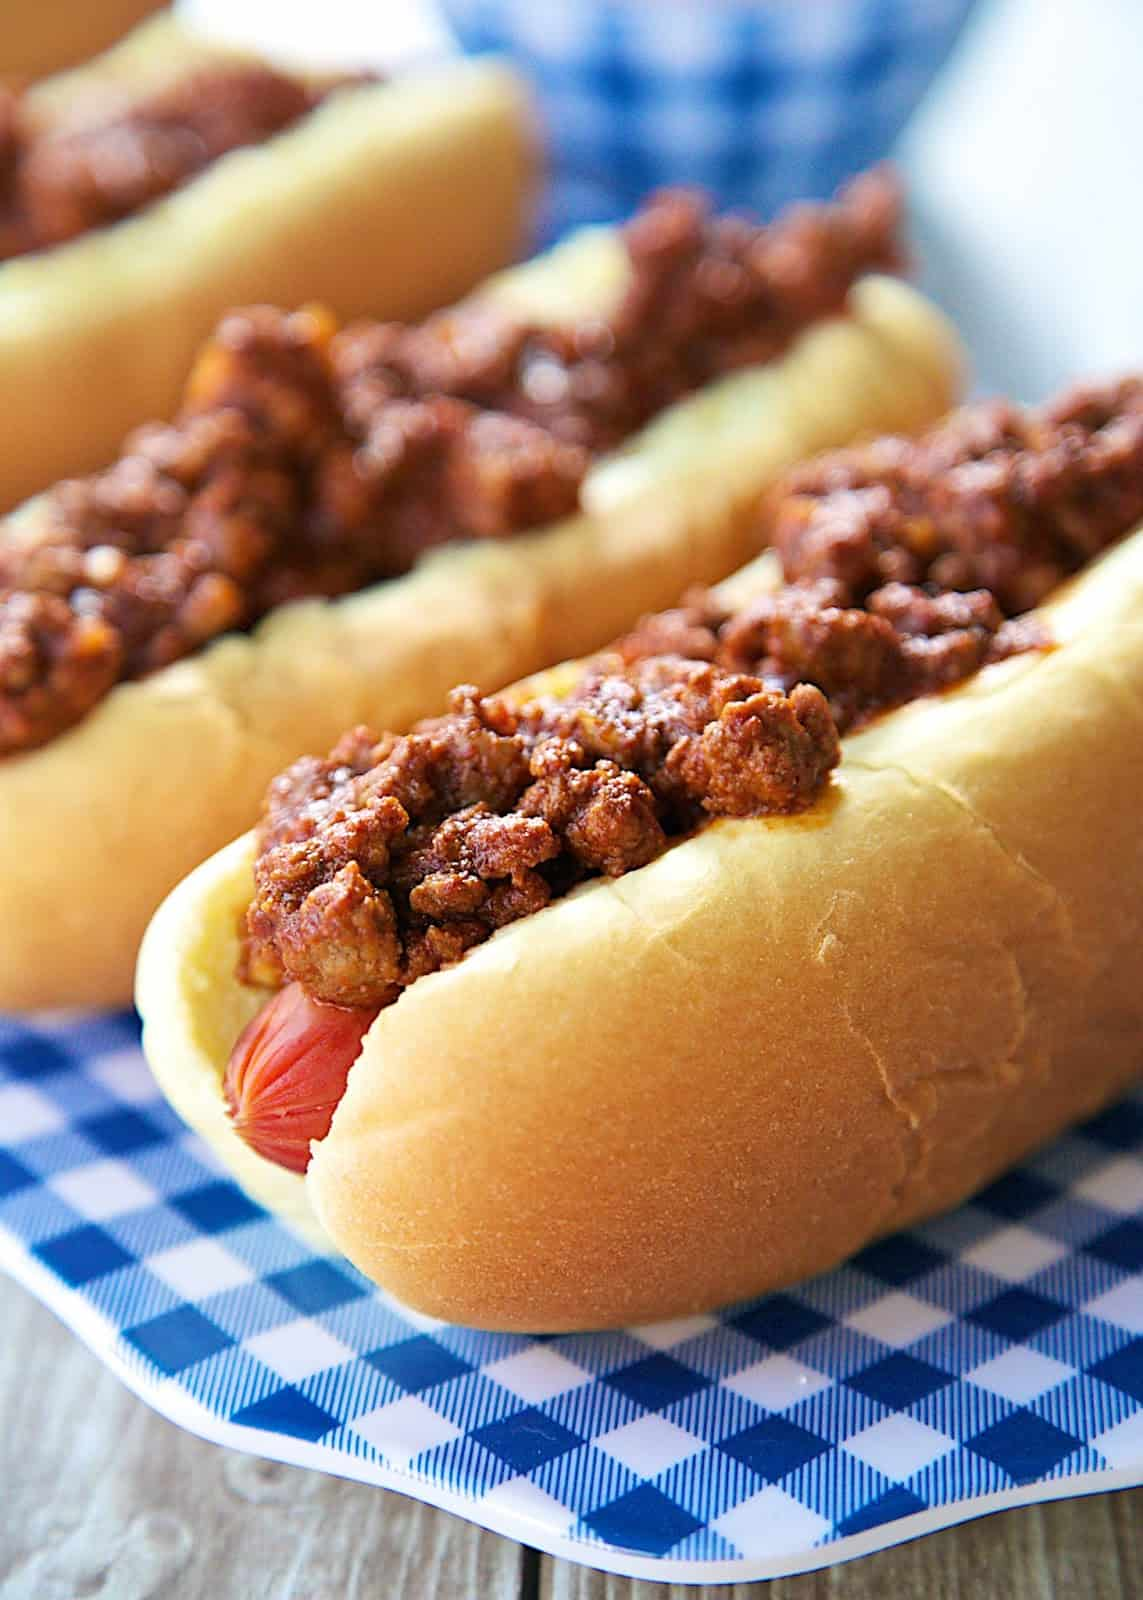 Dr. Pepper Chili Dogs Recipe - hot dogs topped with a sweet and tangy Dr. Pepper chili - great for your Summer cookouts! Ready in under 30 minutes!